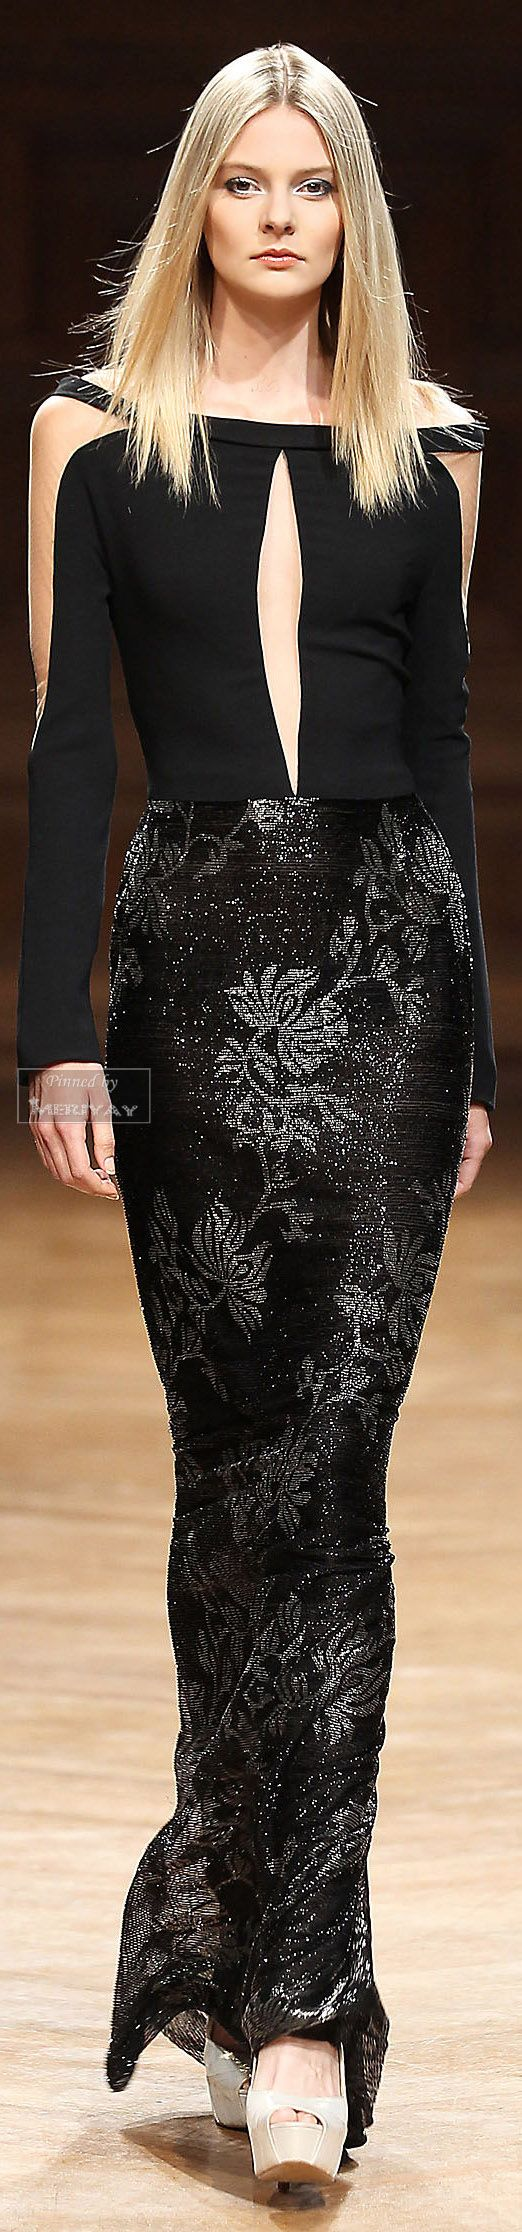 Tony Ward Fall/Winter 2014/2015 Haute Couture Collection ...